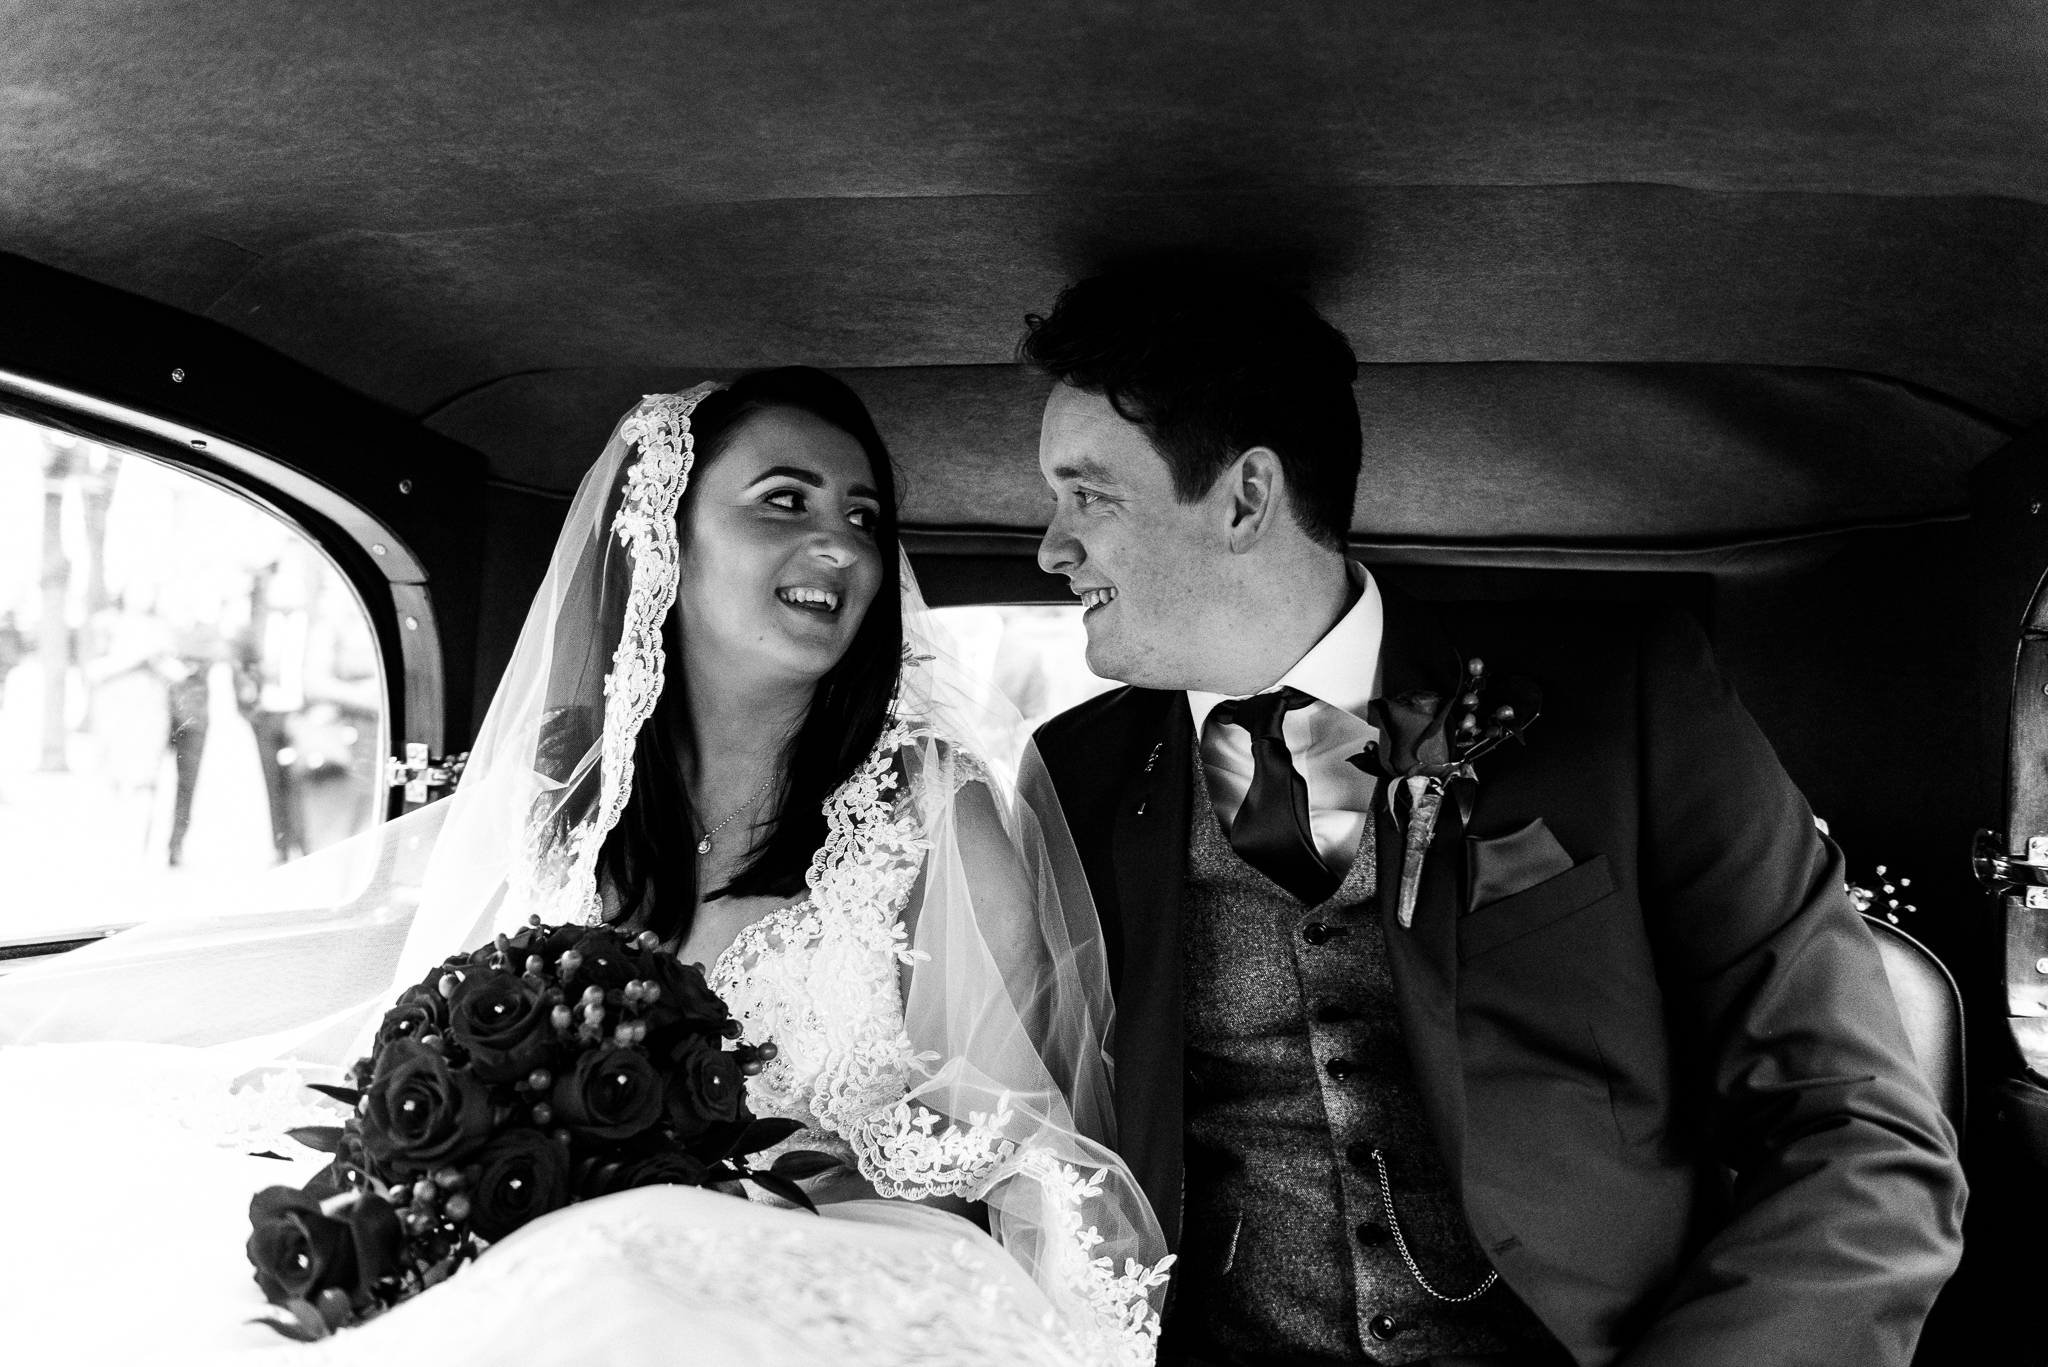 Winter Wedding Christmas Wedding Photography Stafford, Staffordshire Saint Chad Weston Hall Documentary Photographer - Jenny Harper-31.jpg